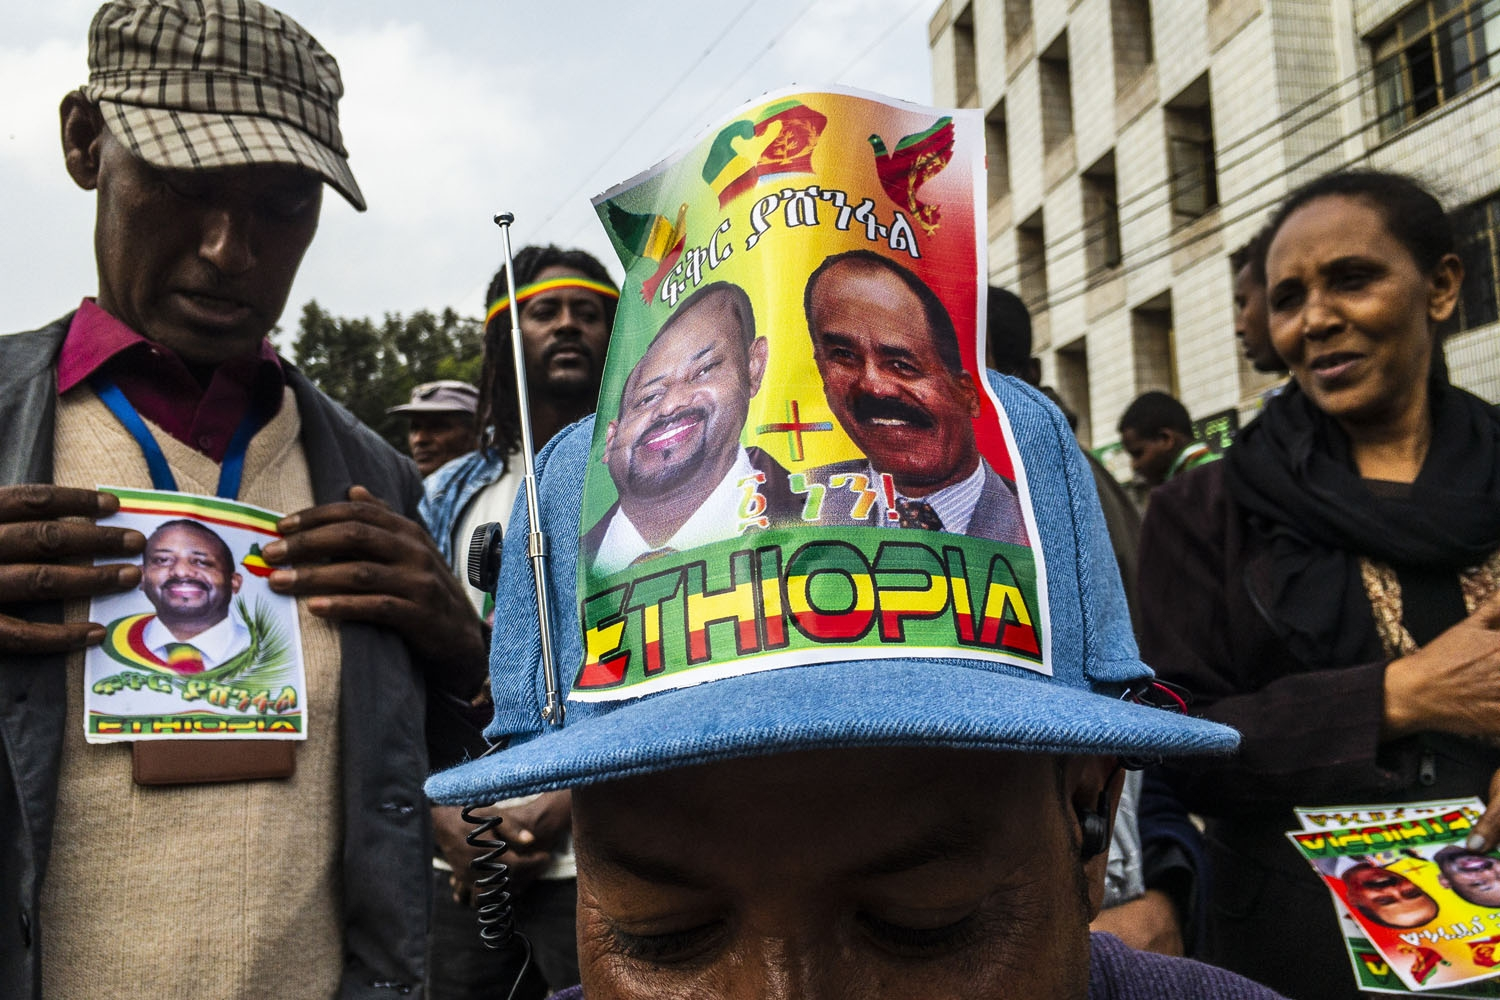 A man wears a hat with the photos of the Eritrean President and the Ethiopian Prime Minister, as people celebrate the arrival of Eritrean President in Addis Ababa on July 14, 2018.